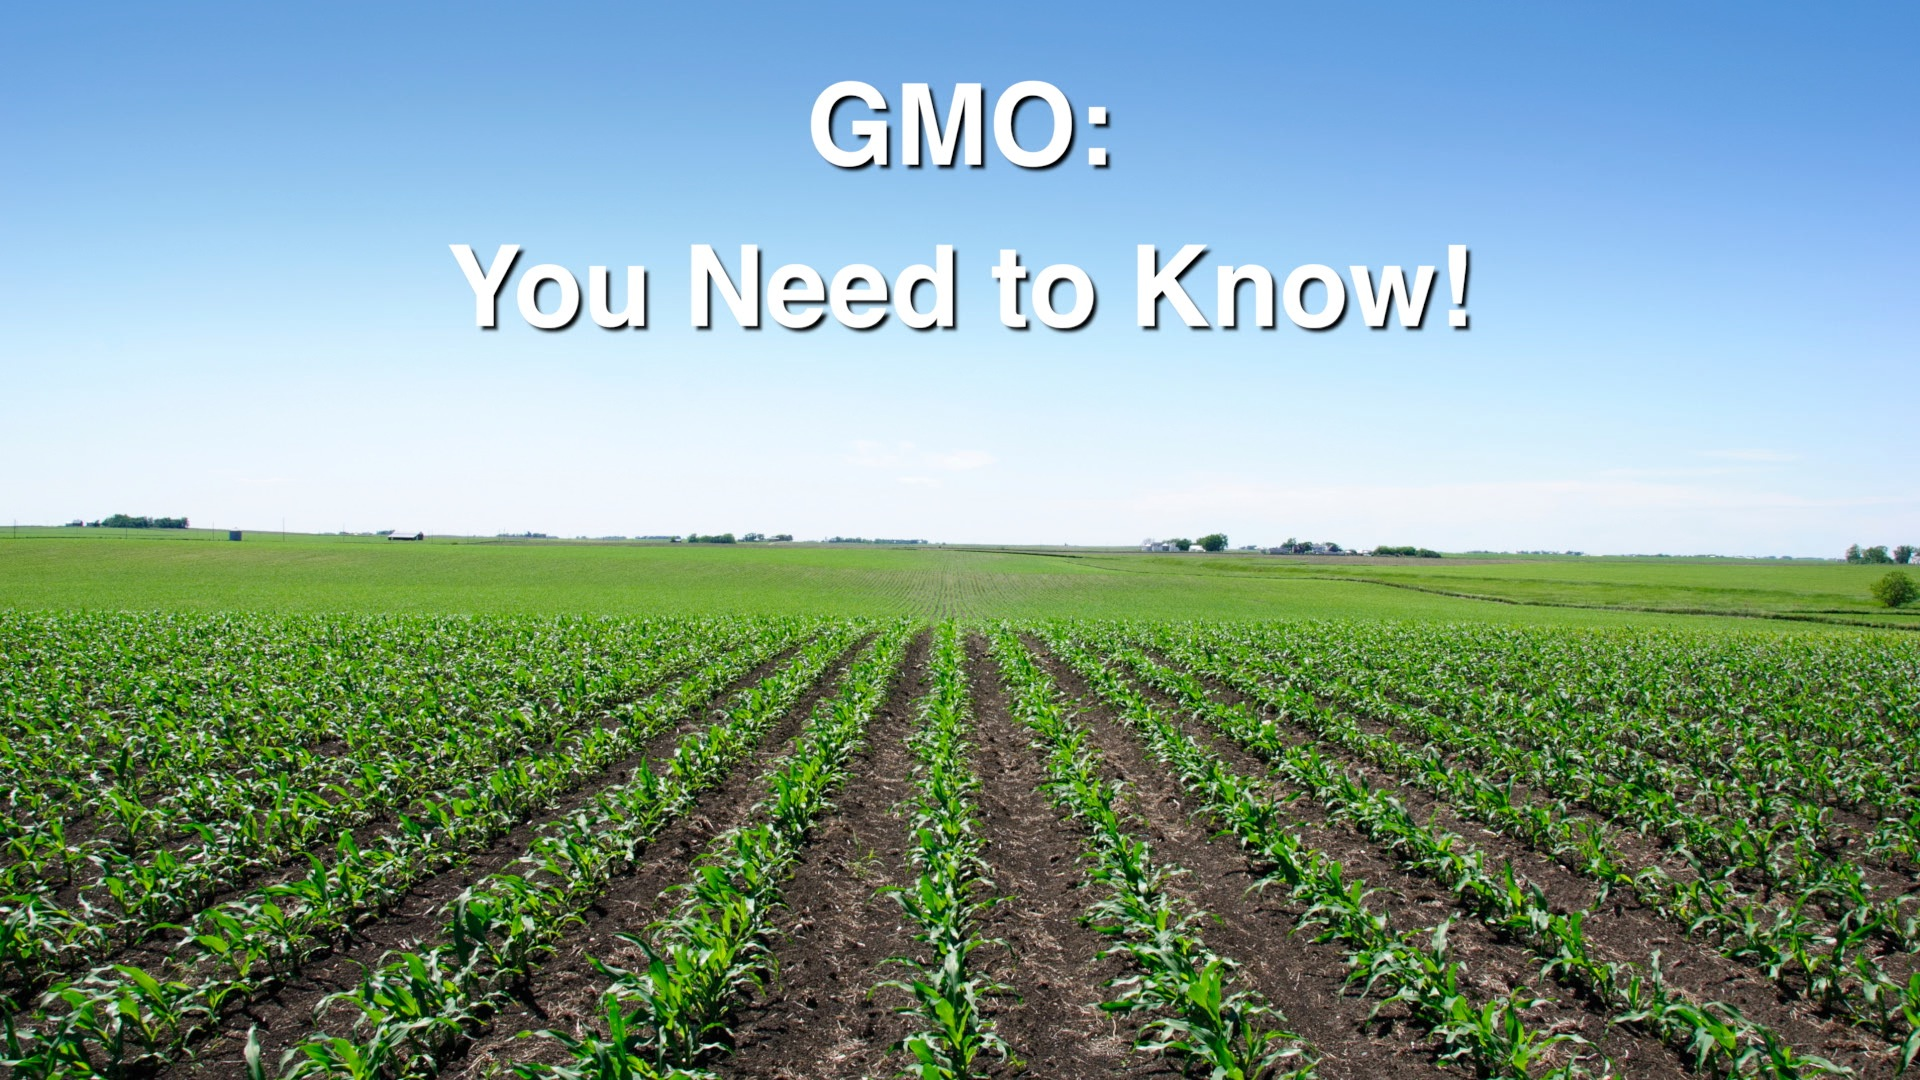 gmo-you-need-to-know-promo-image